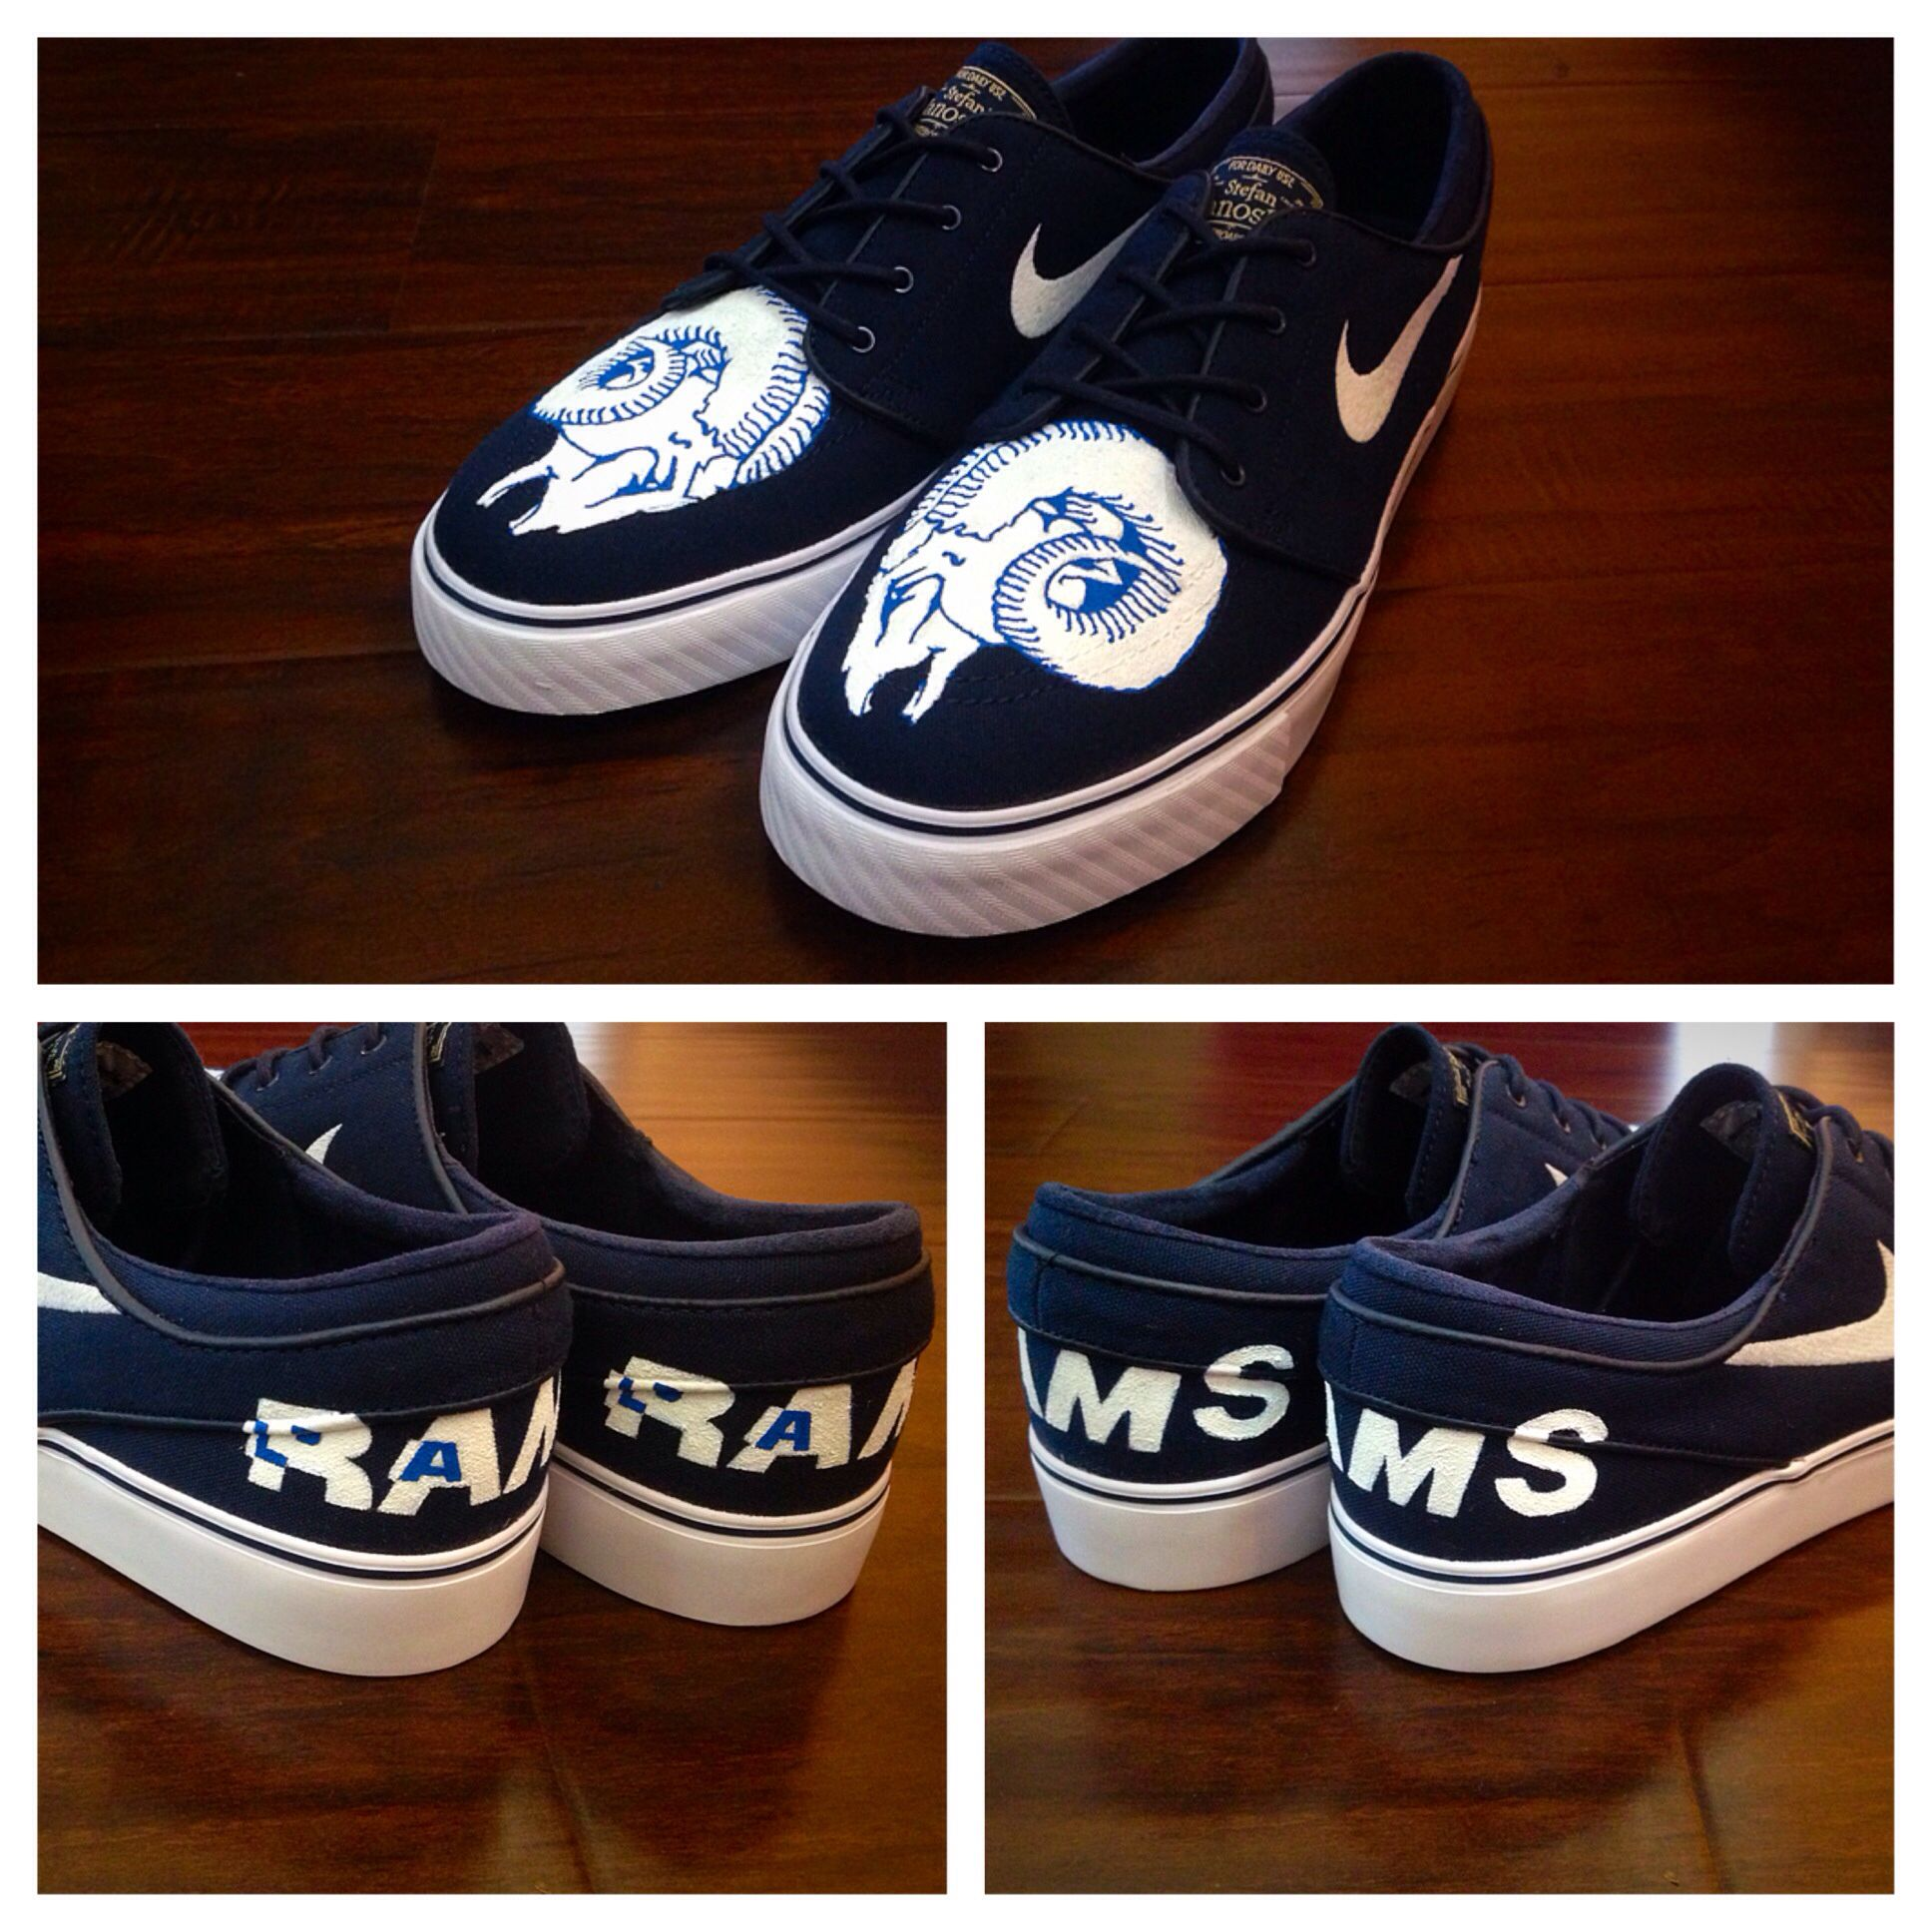 Nike Janoski customs Los Angeles Rams inspired